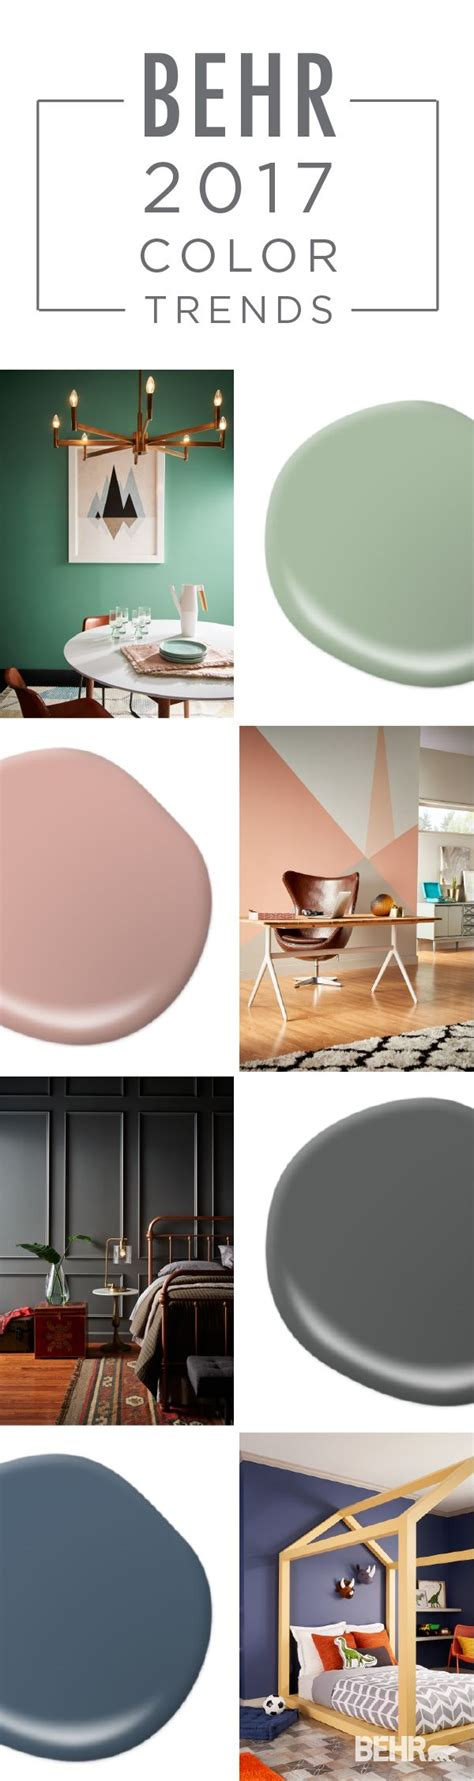 office paint colors 2017 25 best ideas about color trends on pinterest color trends 2016 2016 fashion color trends